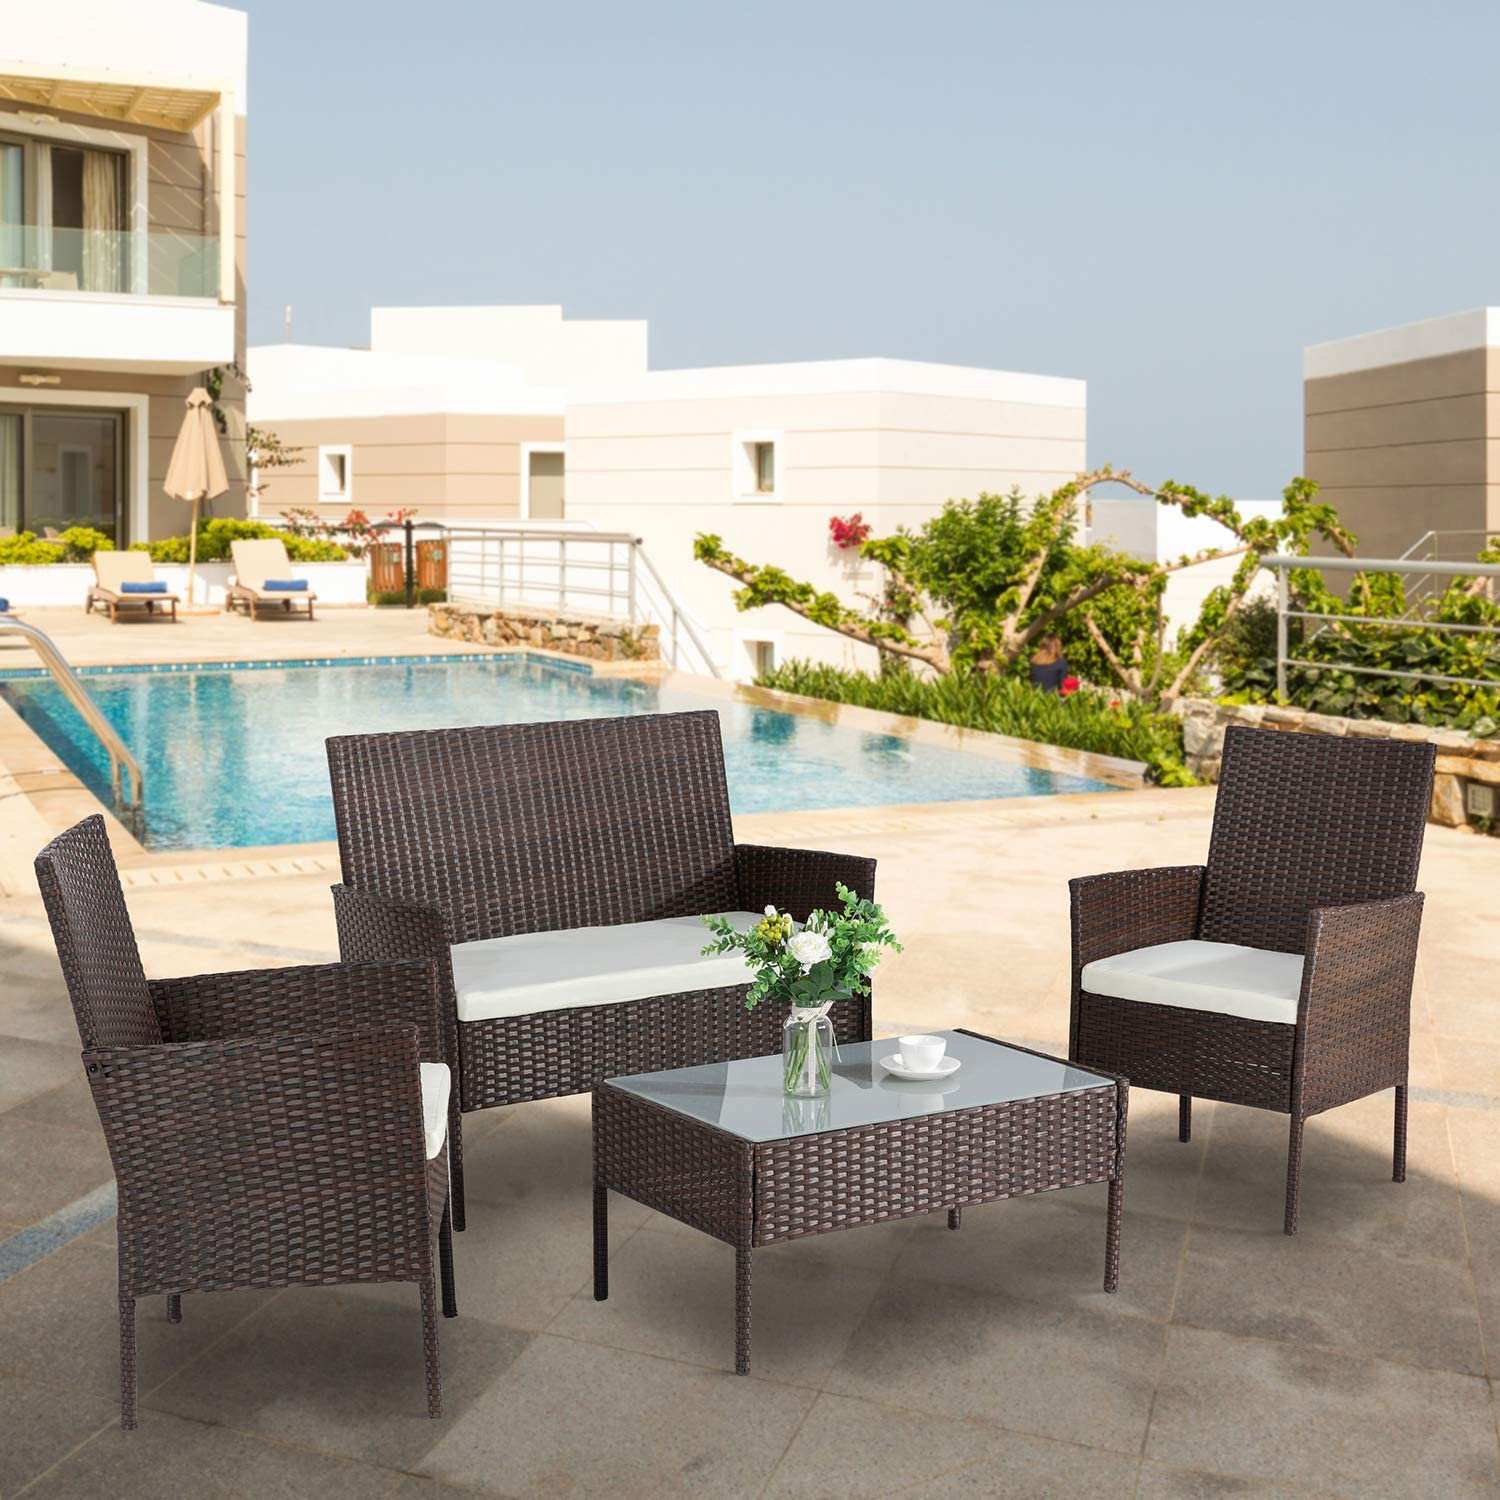 ovios Pieces Outdoor Patio Furniture Sets Rattan Chair Wicker Set with Cushions,Table,Outdoor Indoor Backyard Porch Garden Poolside Balcony Furniture Brown-Beige